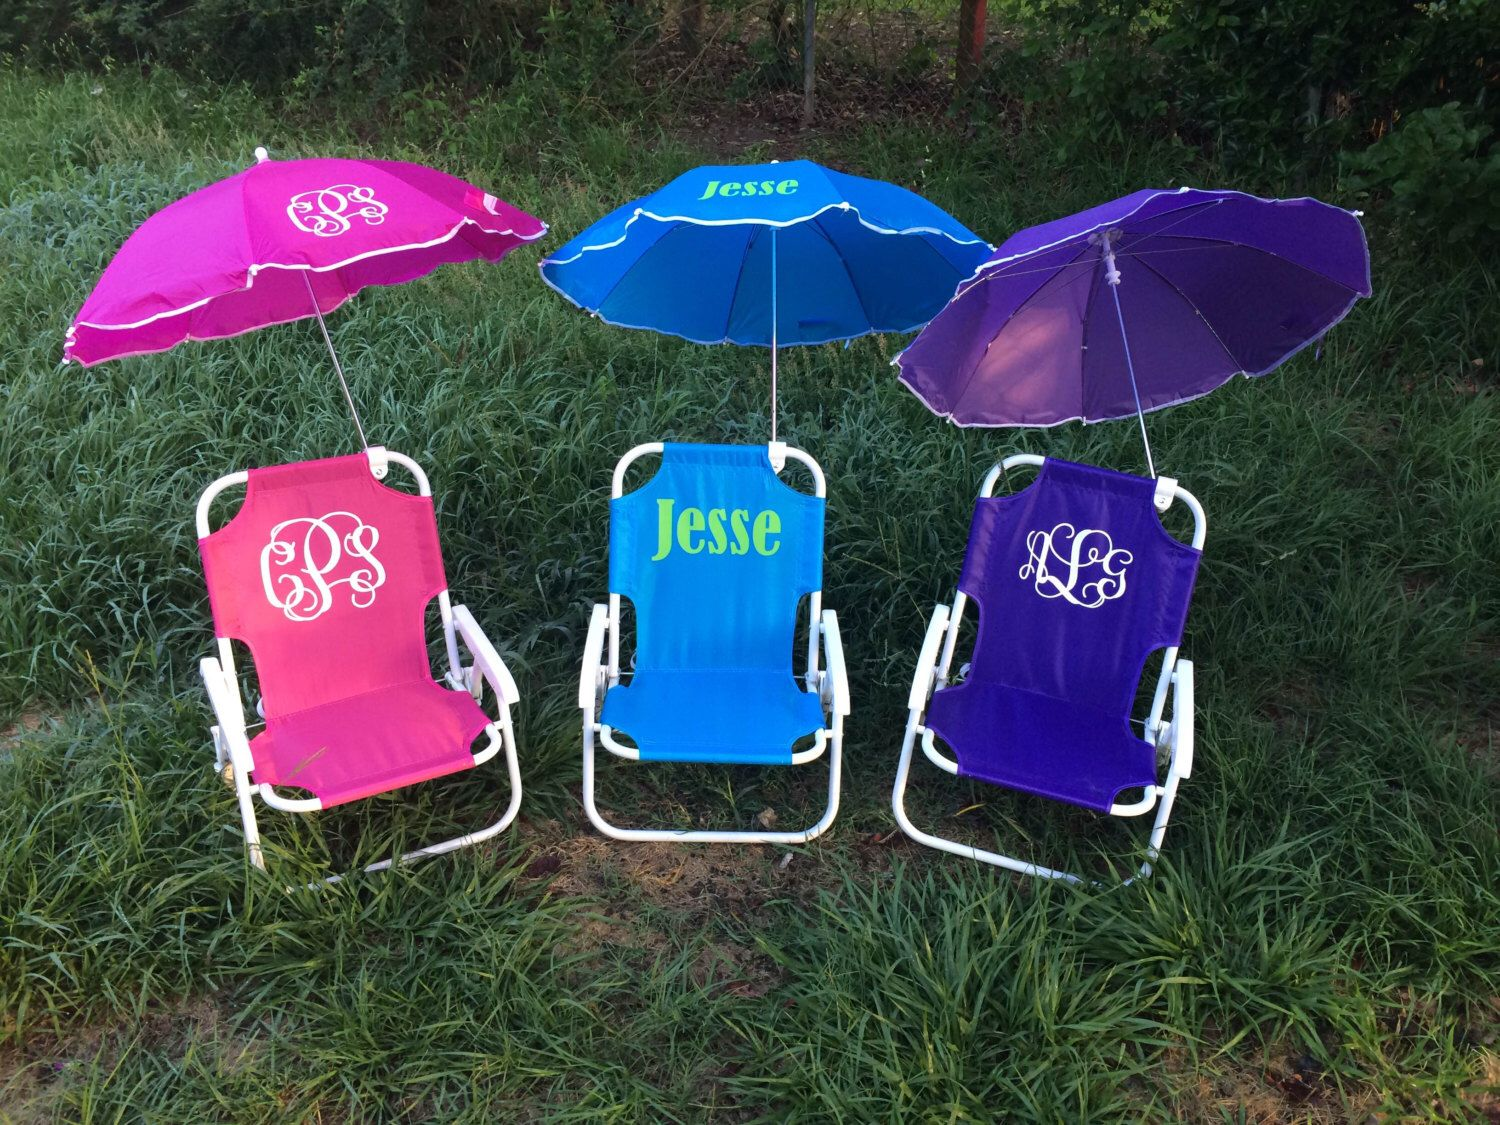 Monogrammed Toddler Chair Pin By Peyton Hisel On Vacation Toddler Beach Toddler Chair